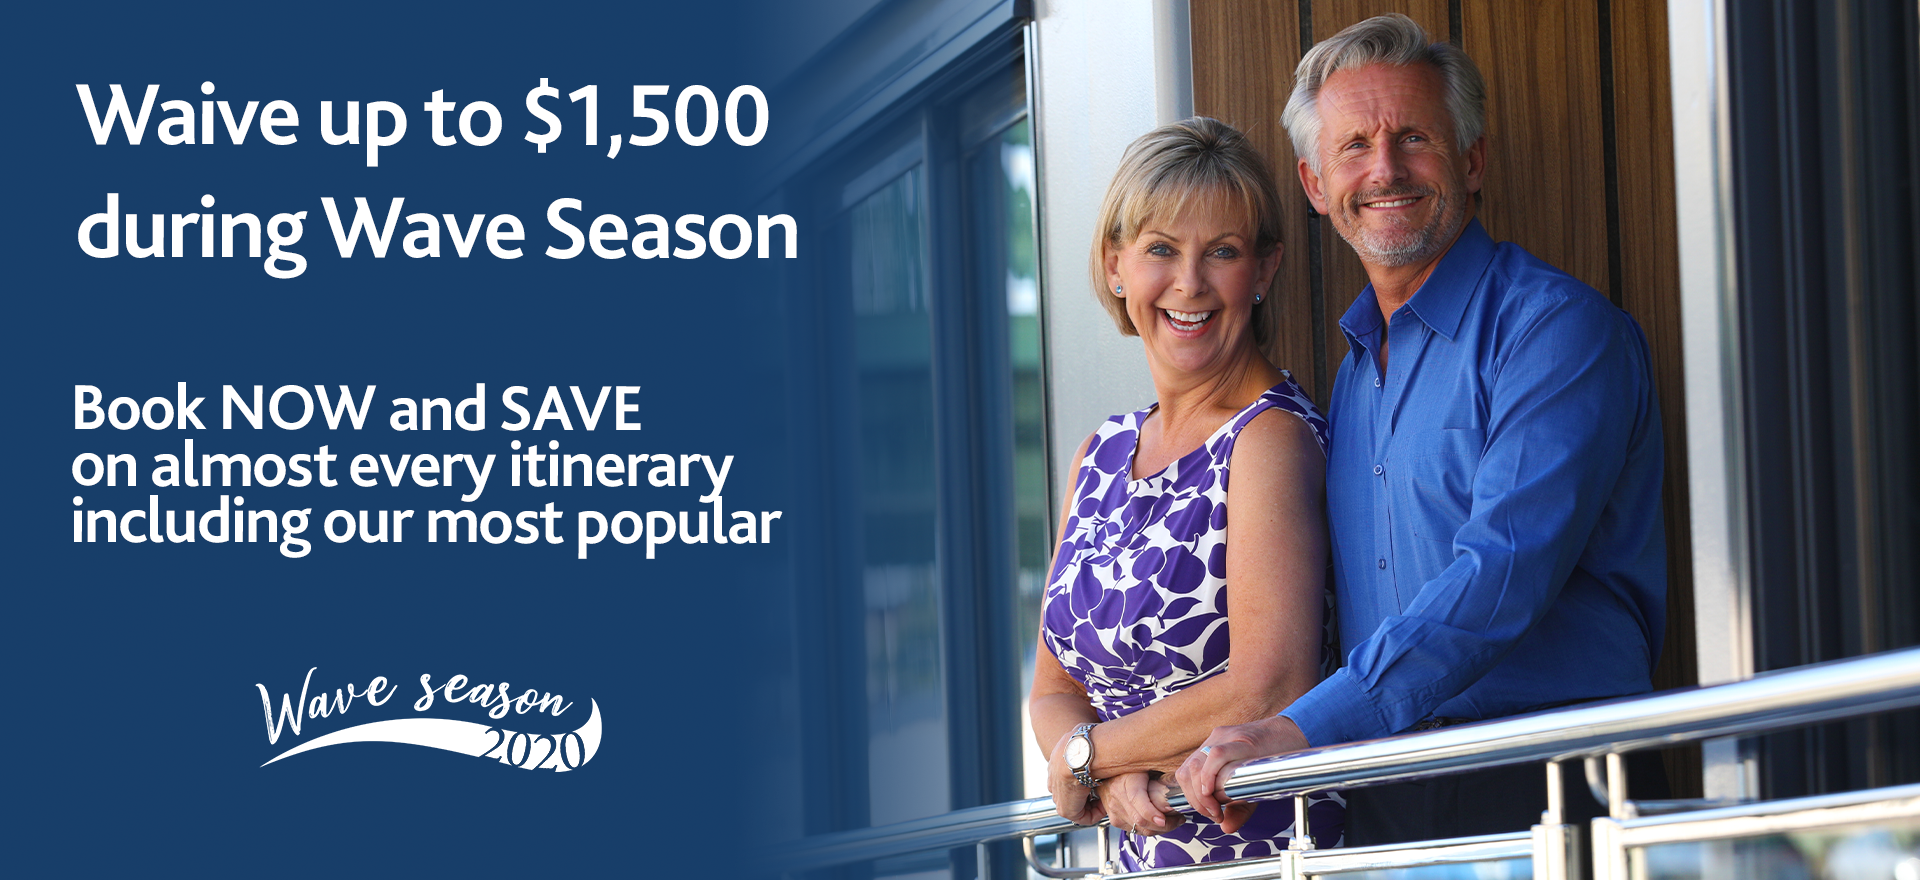 Wave Season 2020 | river cruise promotions